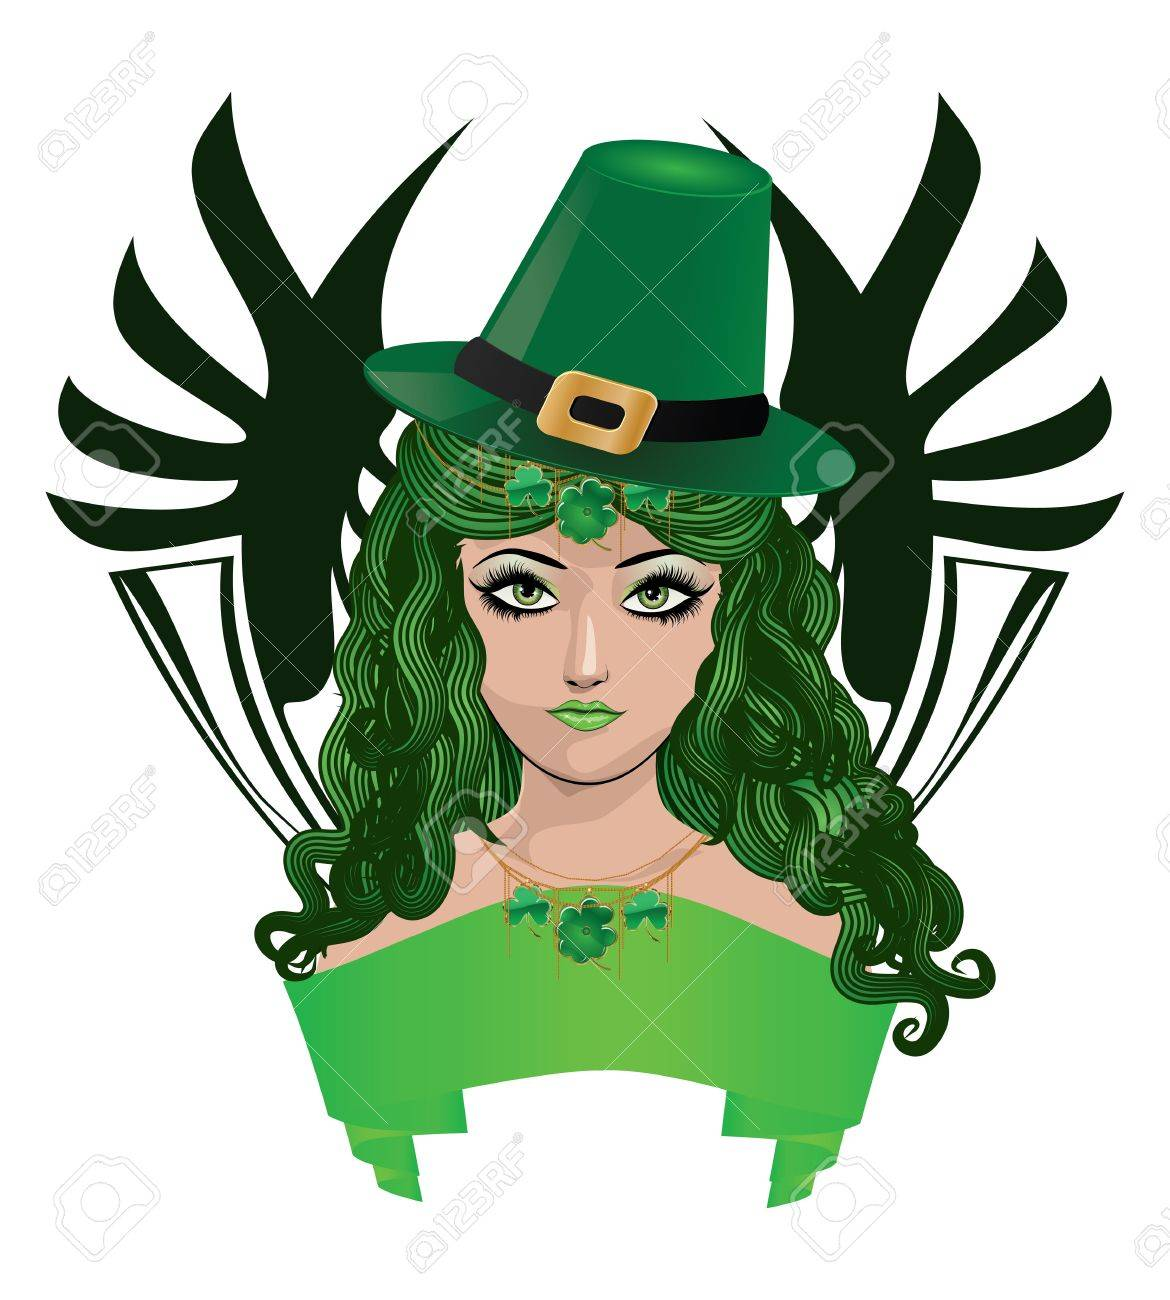 Illustration of girl with green hair and green hat, leprechaun girl. Stock Vector - 17259055